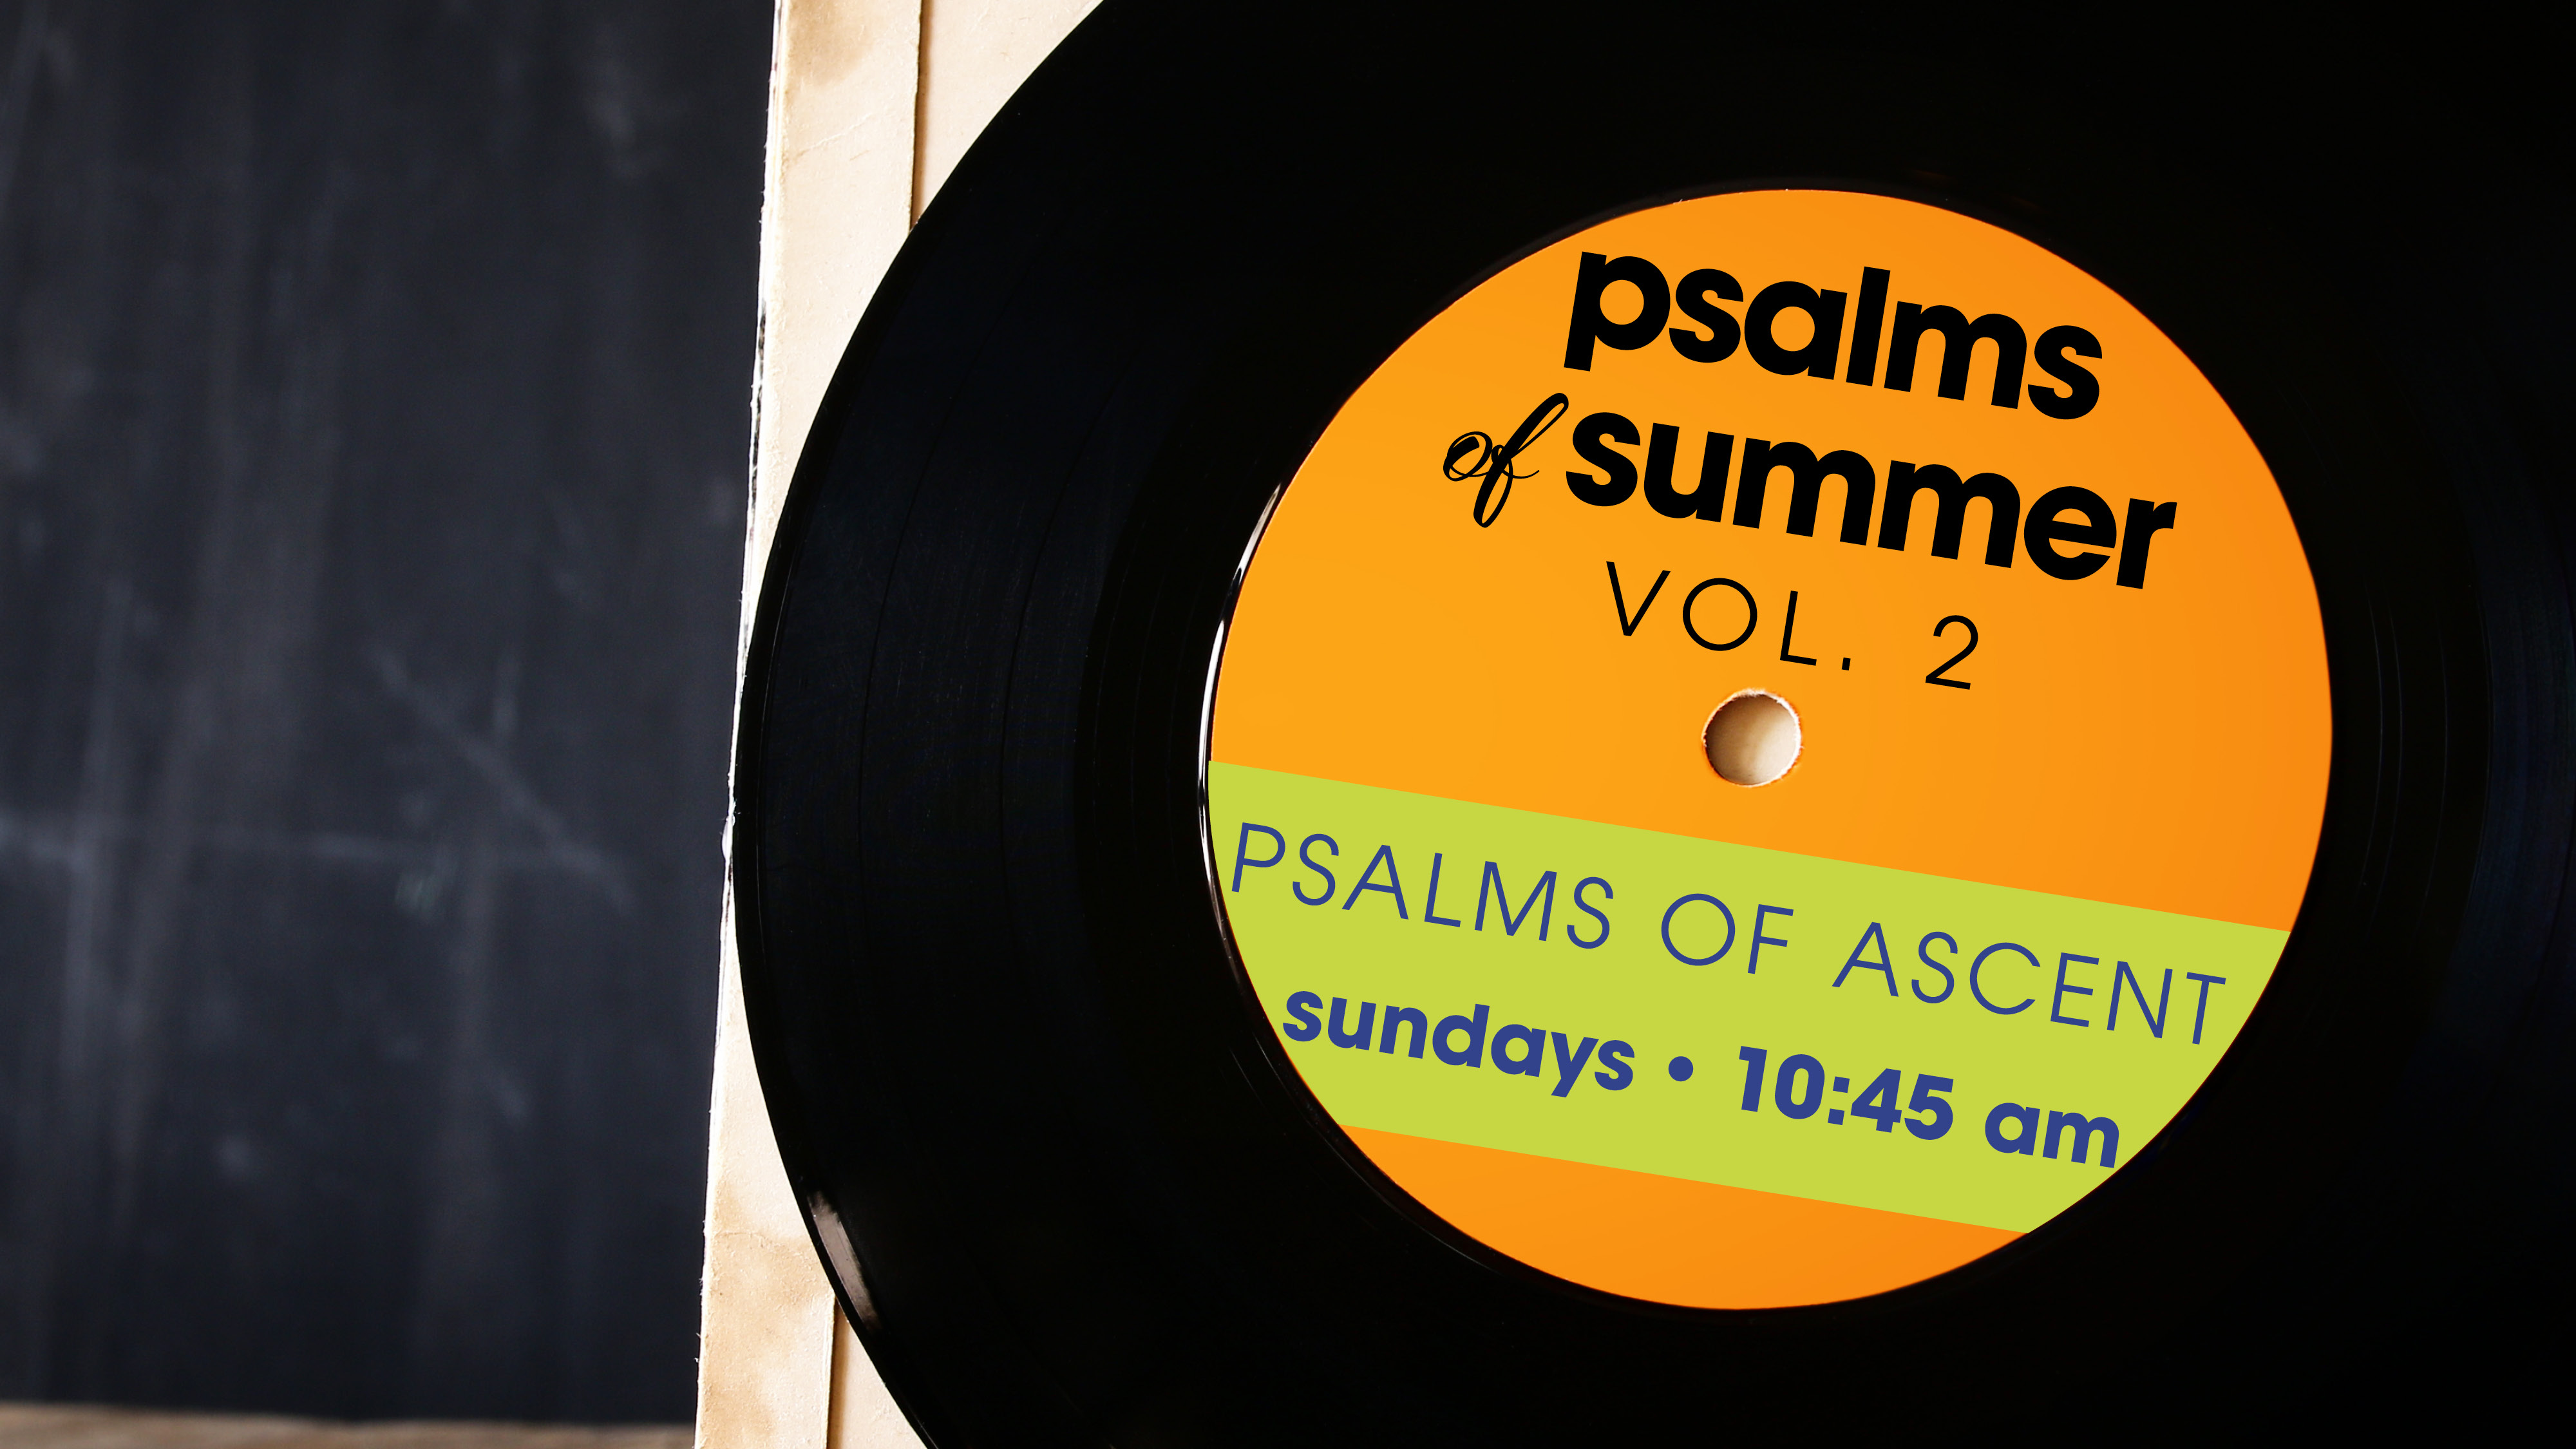 Psalms of Summer Vol 2. Series